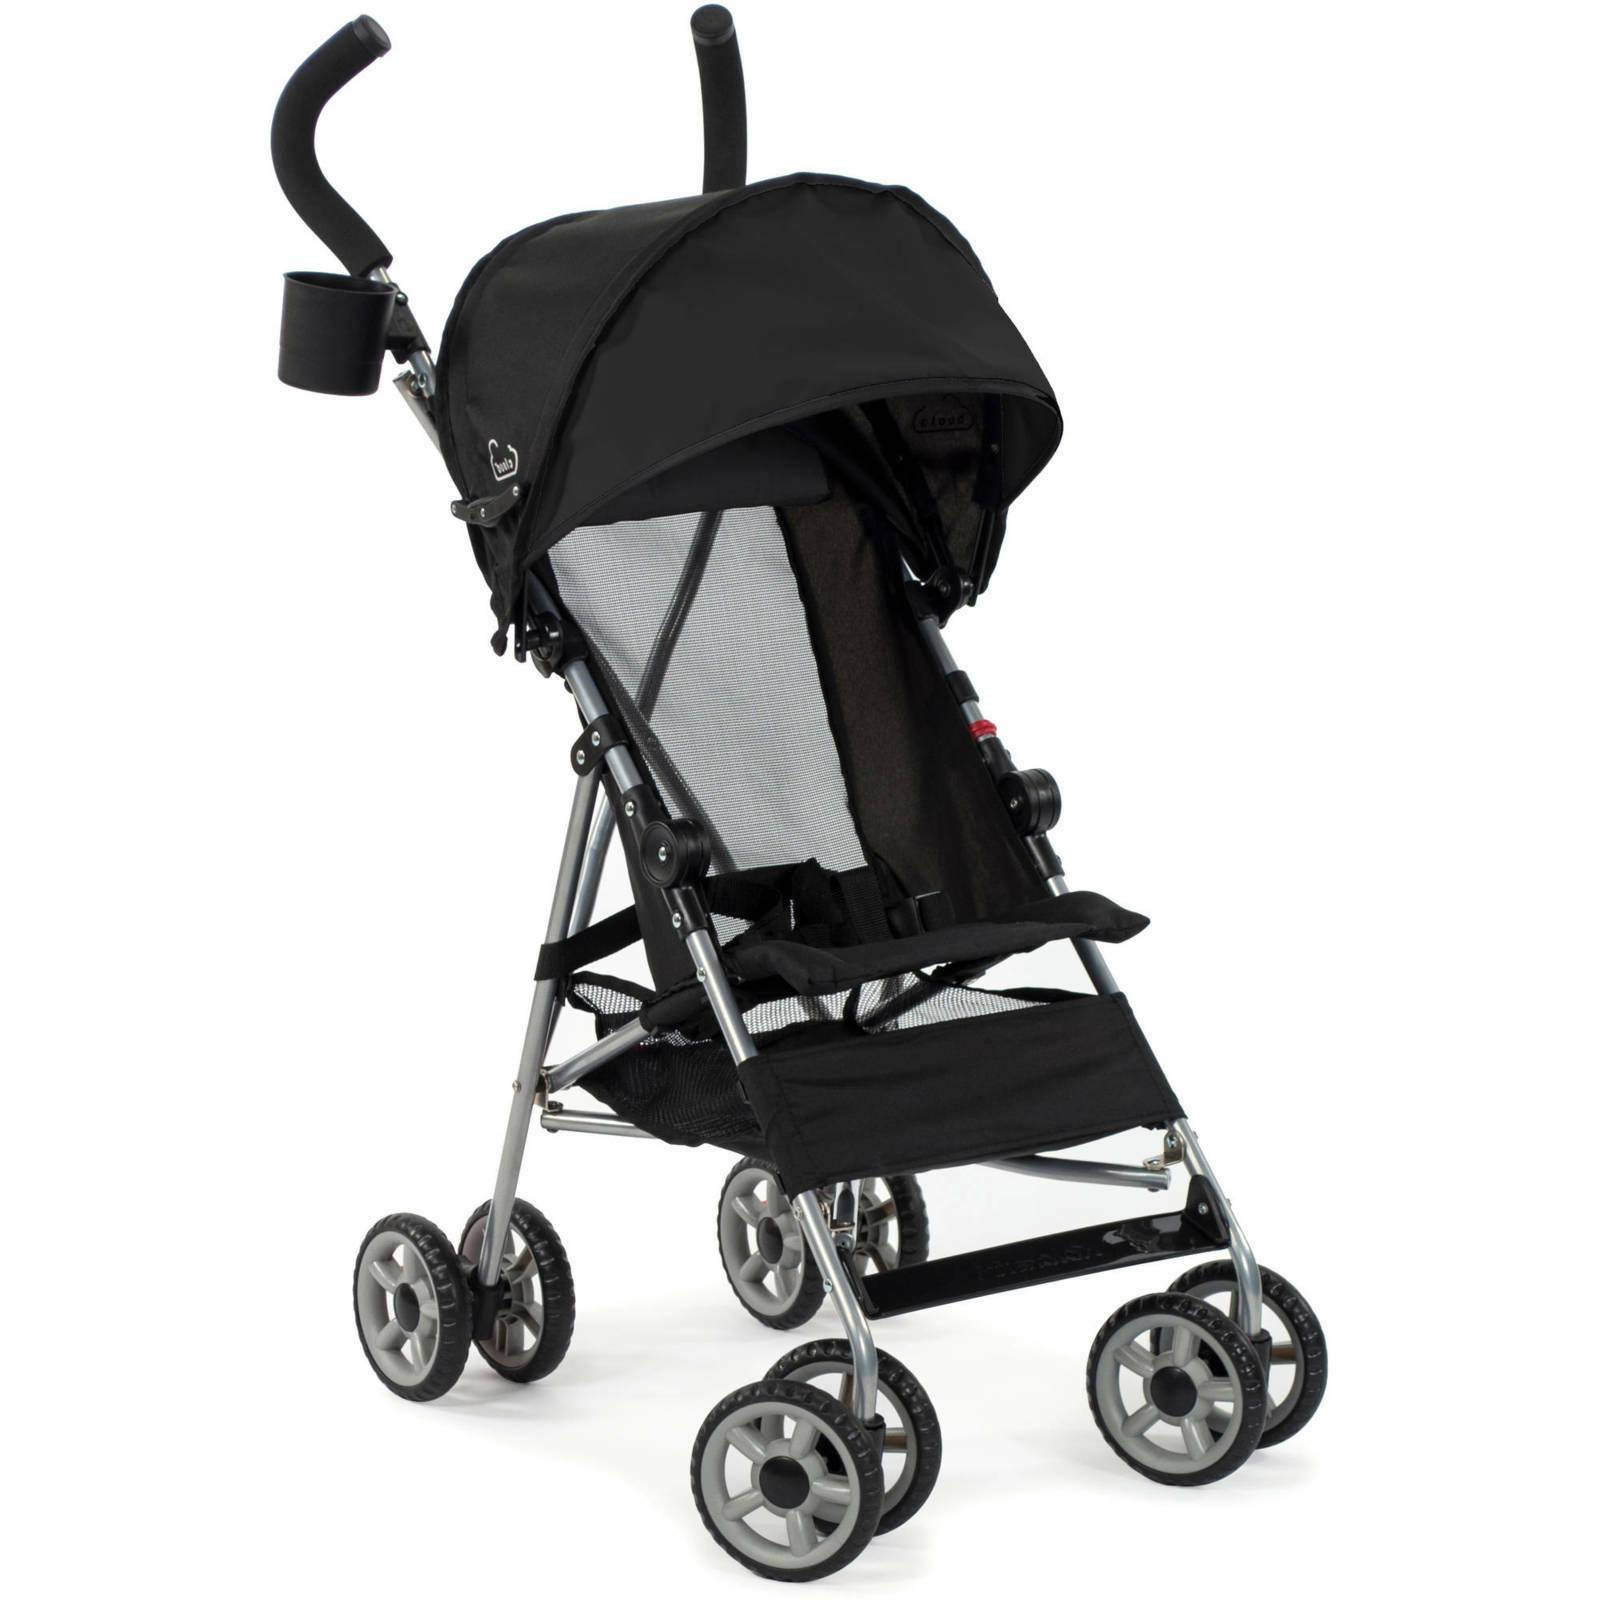 Childrens Single Toddler Friendly Compact